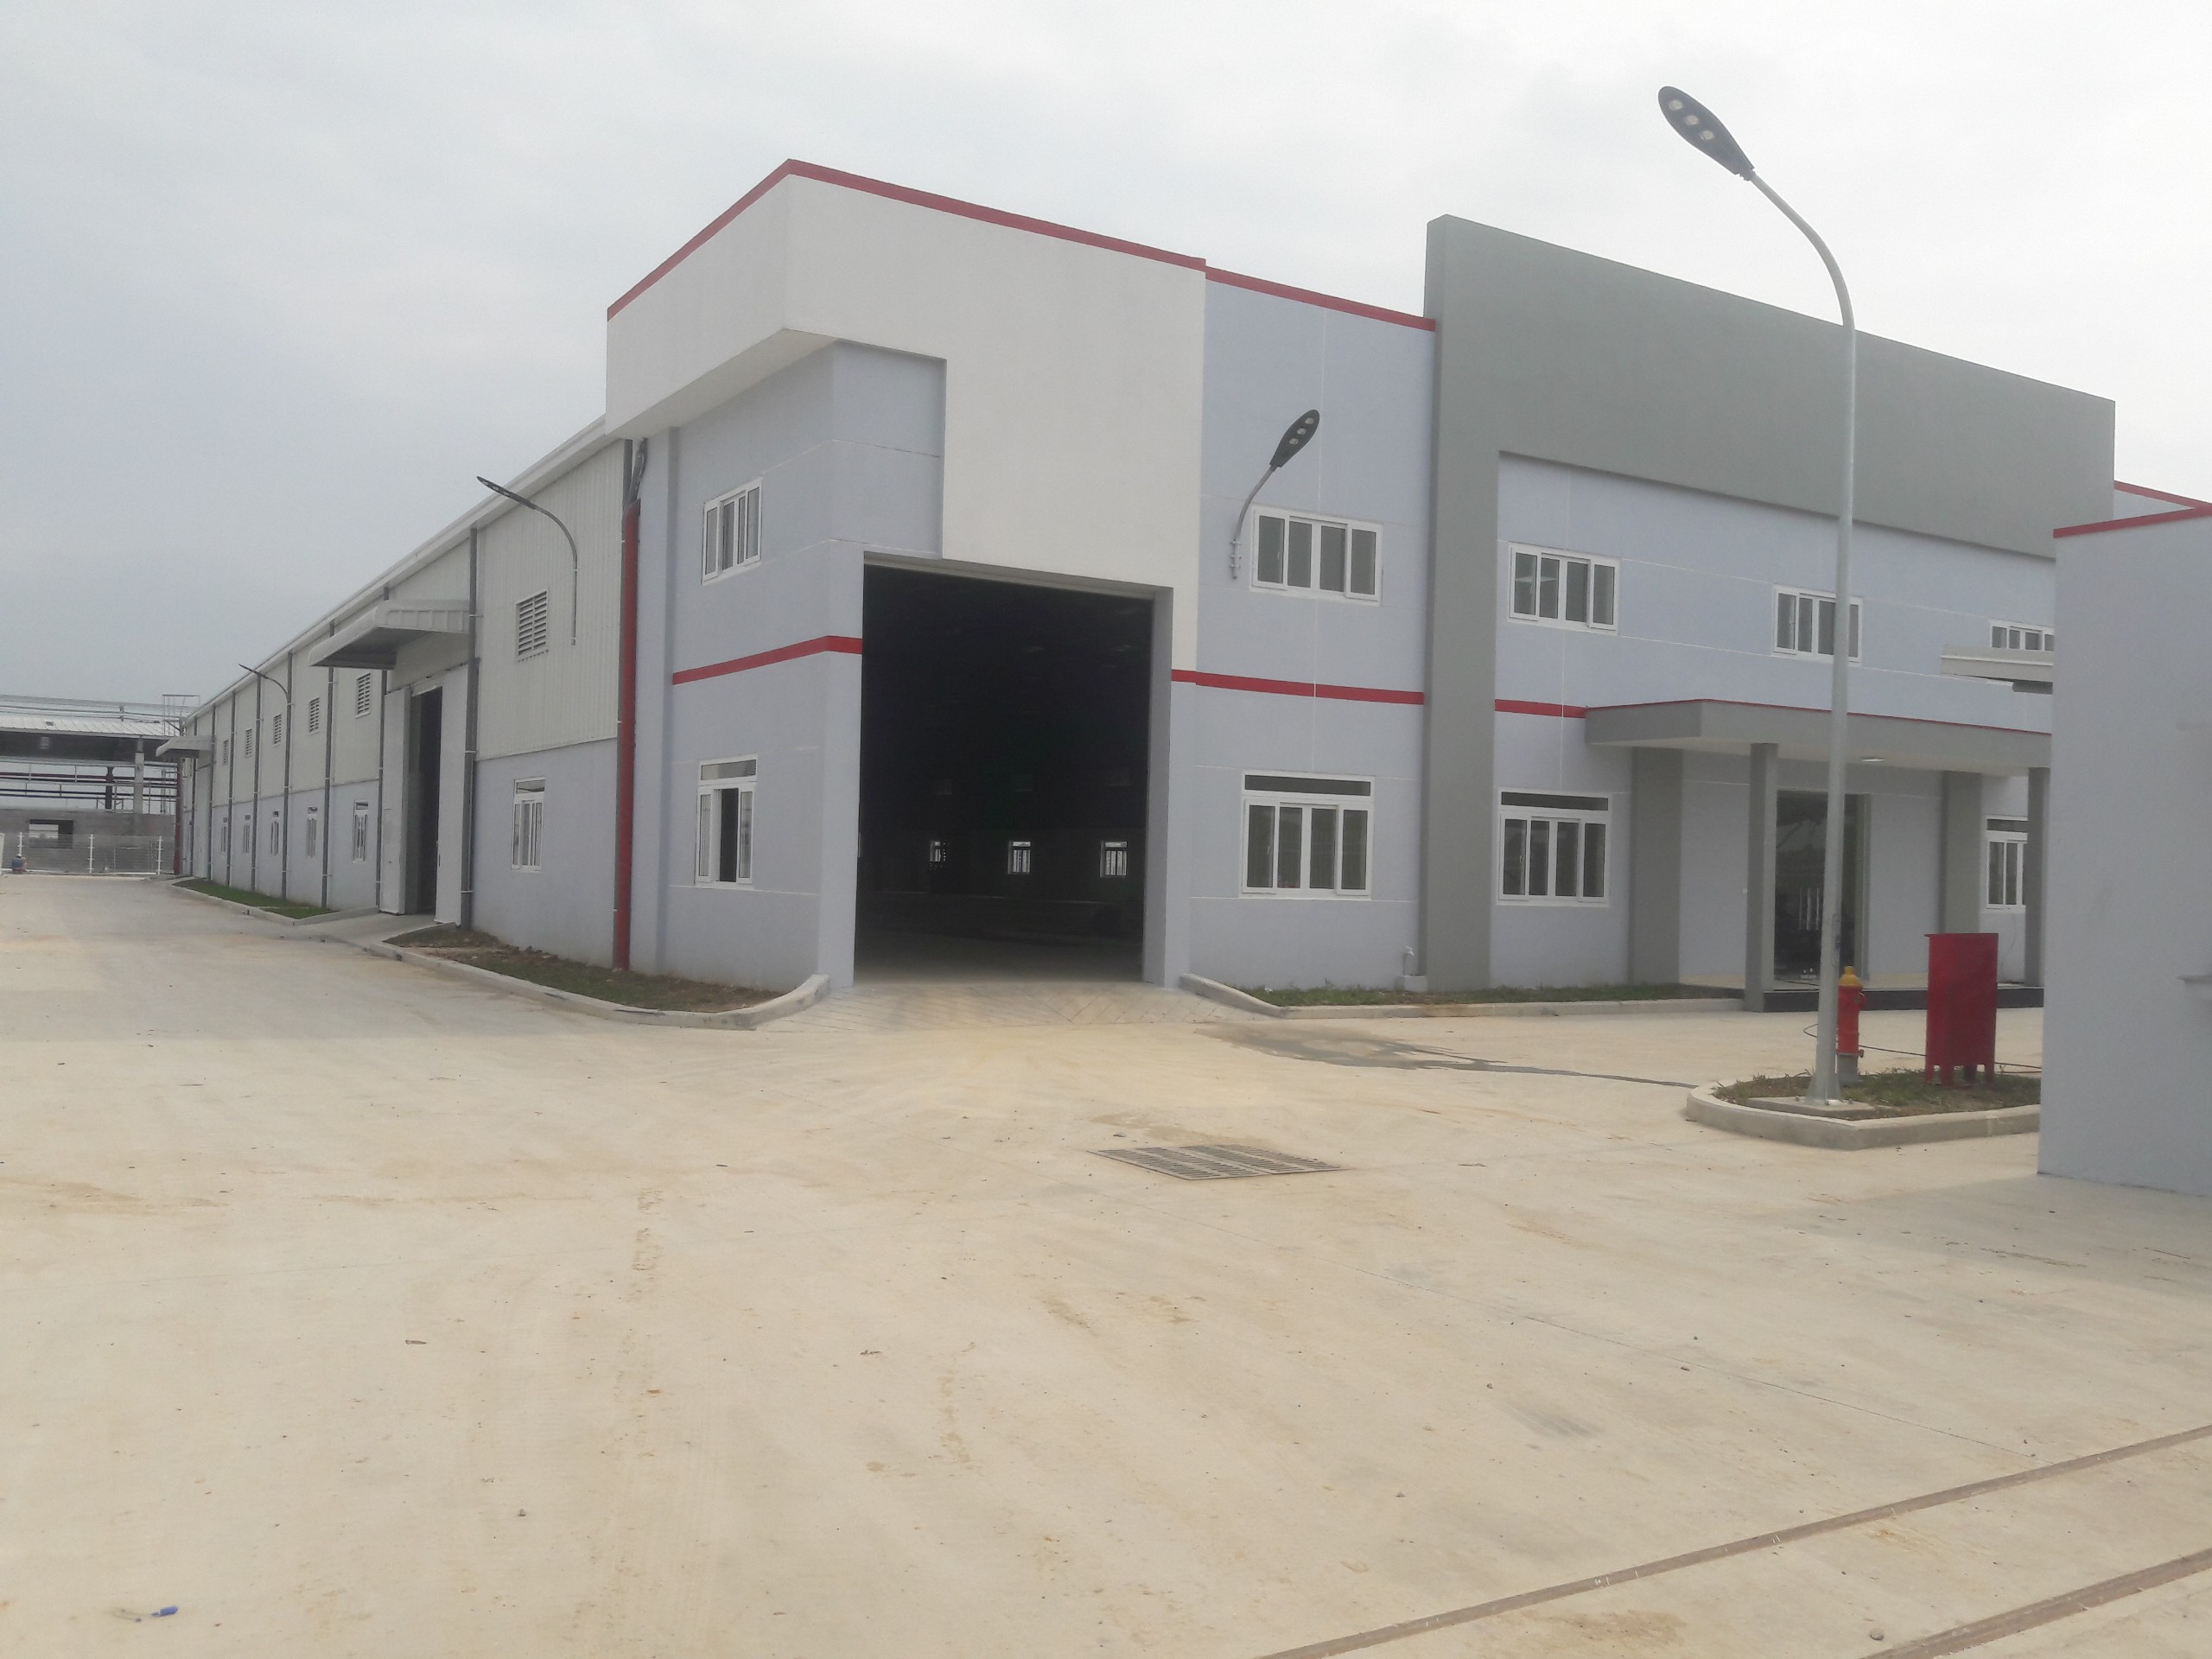 Factories in Dong Nai province, Nhon Trach 3 Industrial Park